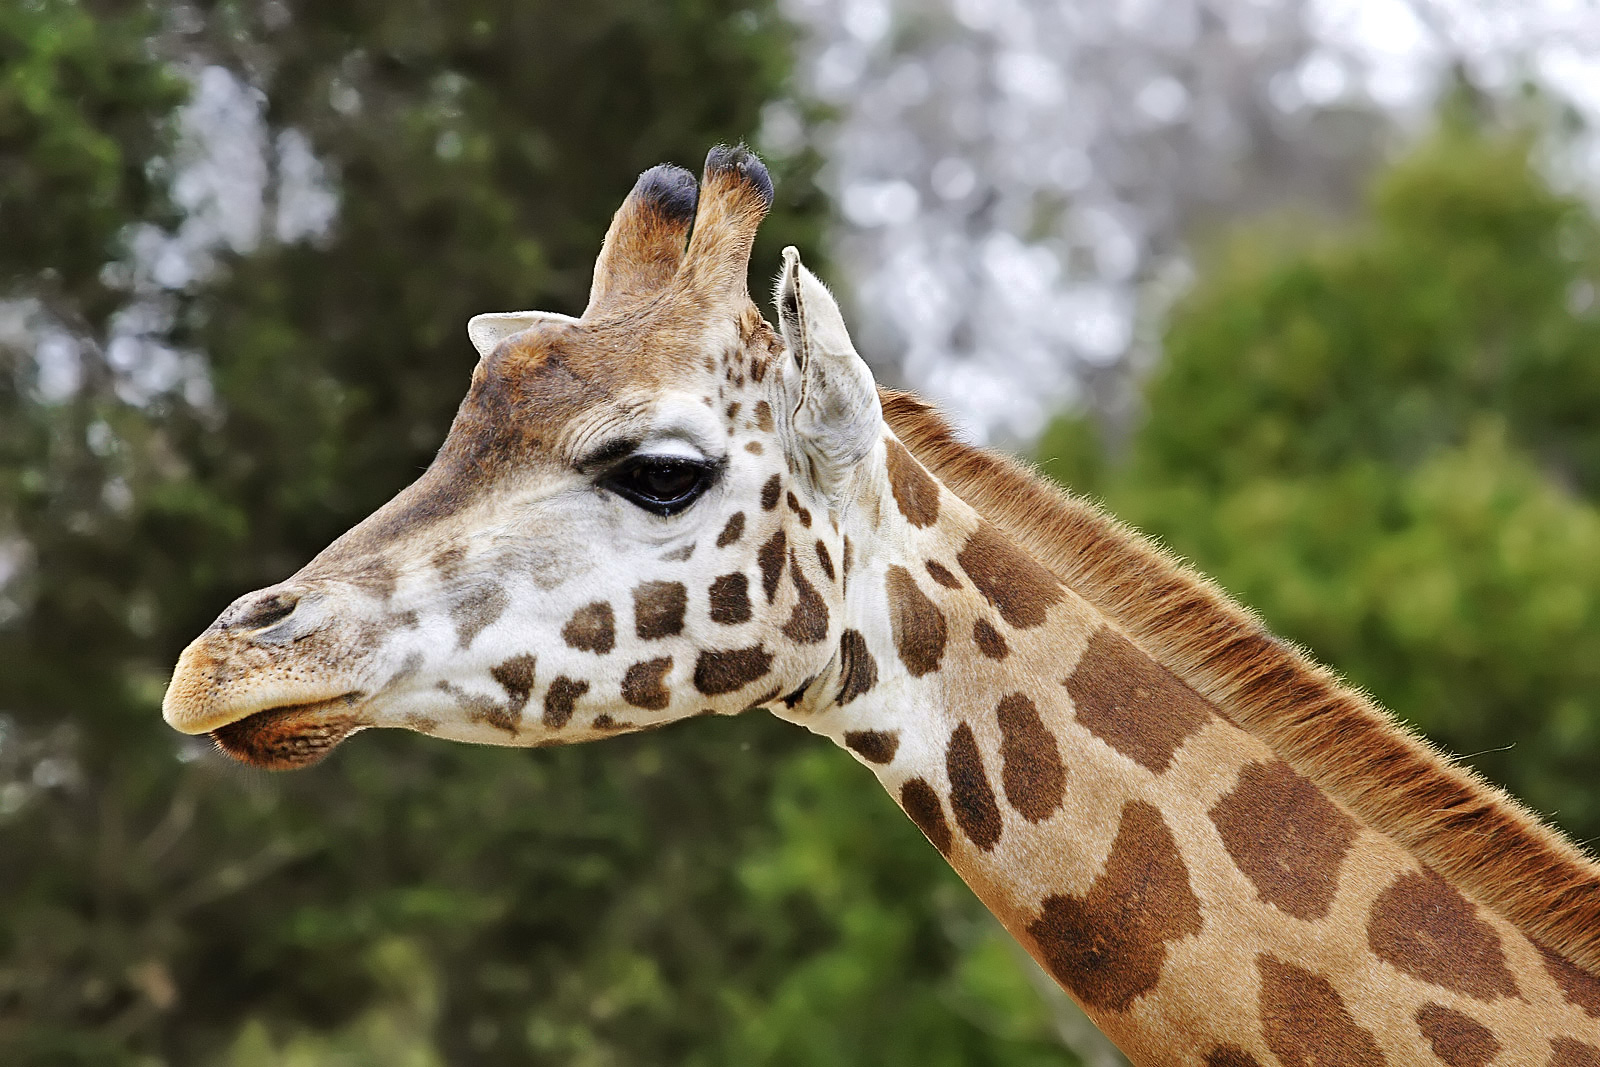 A giraffe at Melbourne Zoo